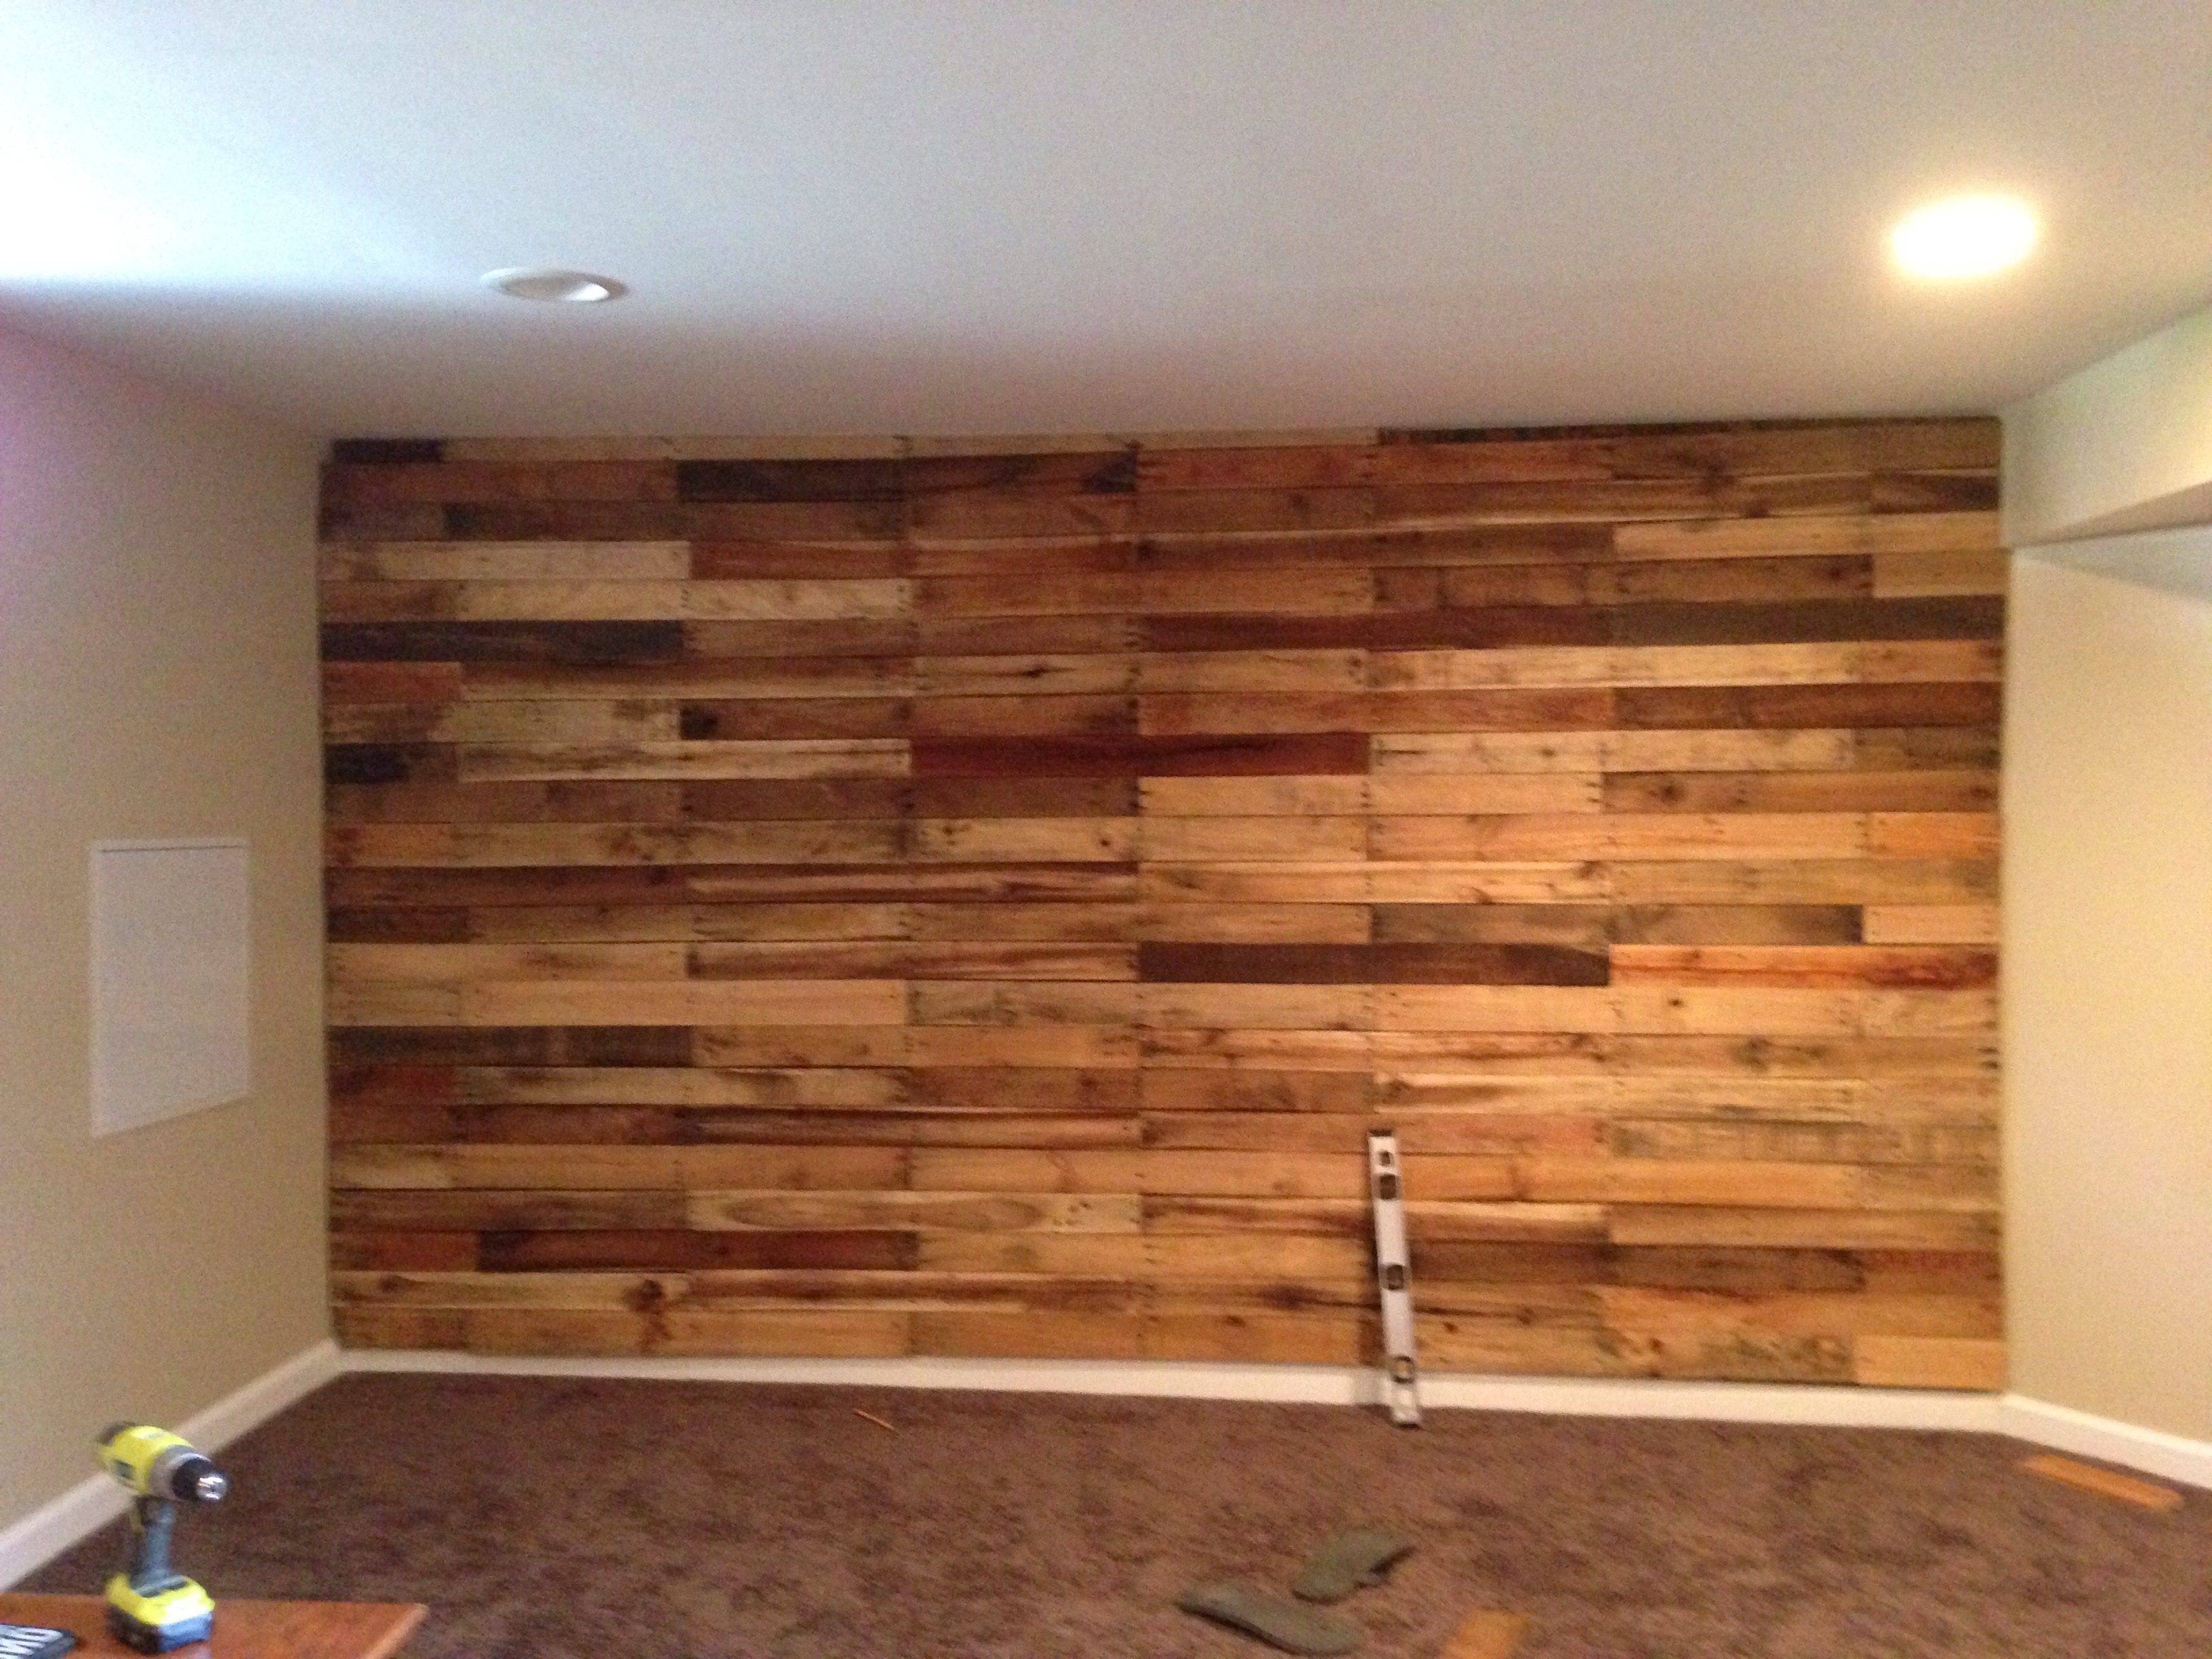 Pallet Accent Wall! – Album On Imgur Intended For Popular Garage Wall Accents (View 13 of 15)